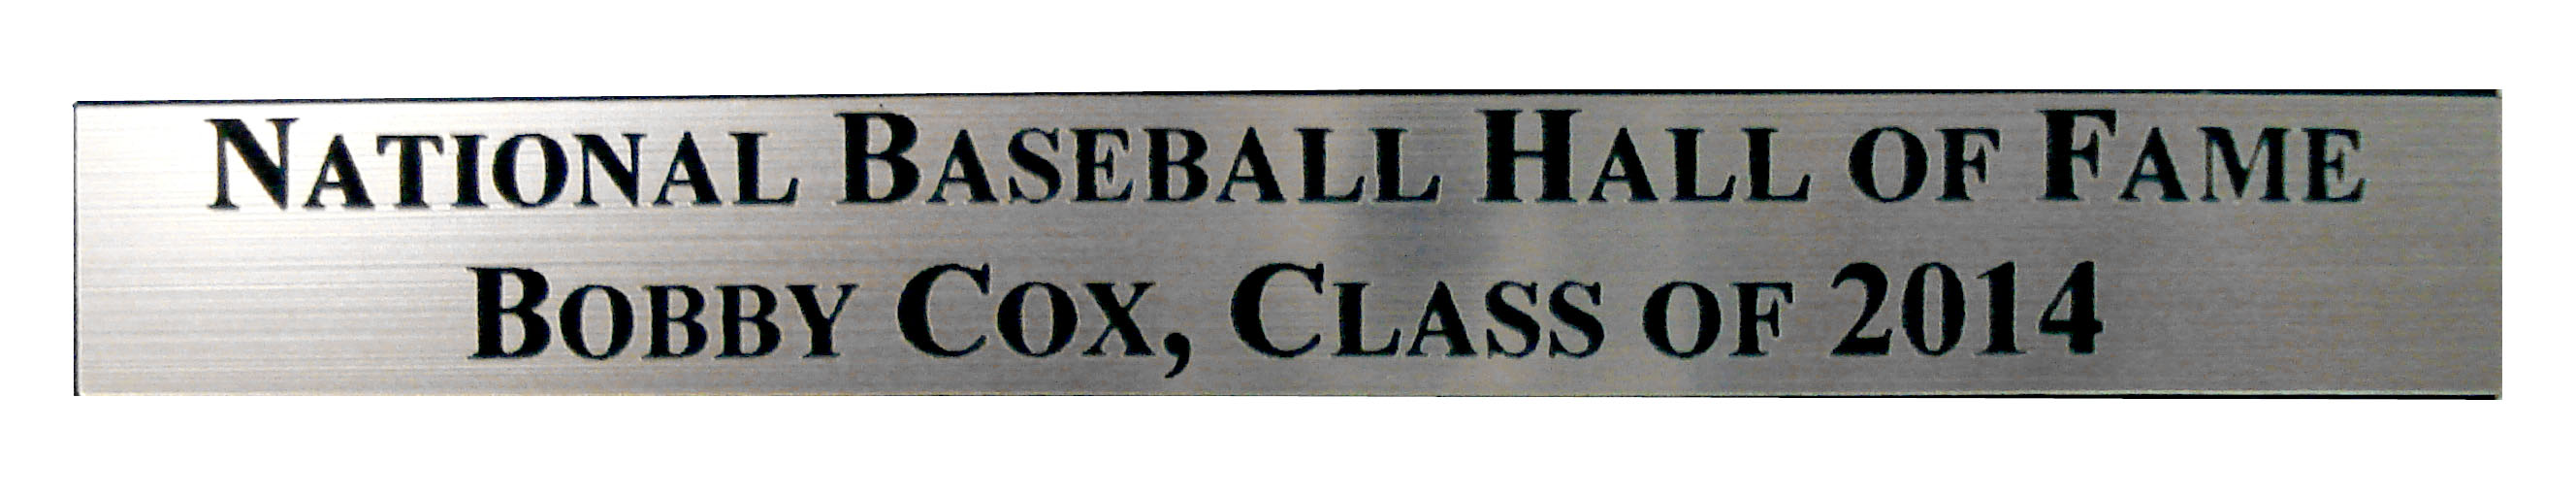 Hall of Fame Engraved Nameplate Bobby Cox by STEINER SPORTS MEMORABILIA